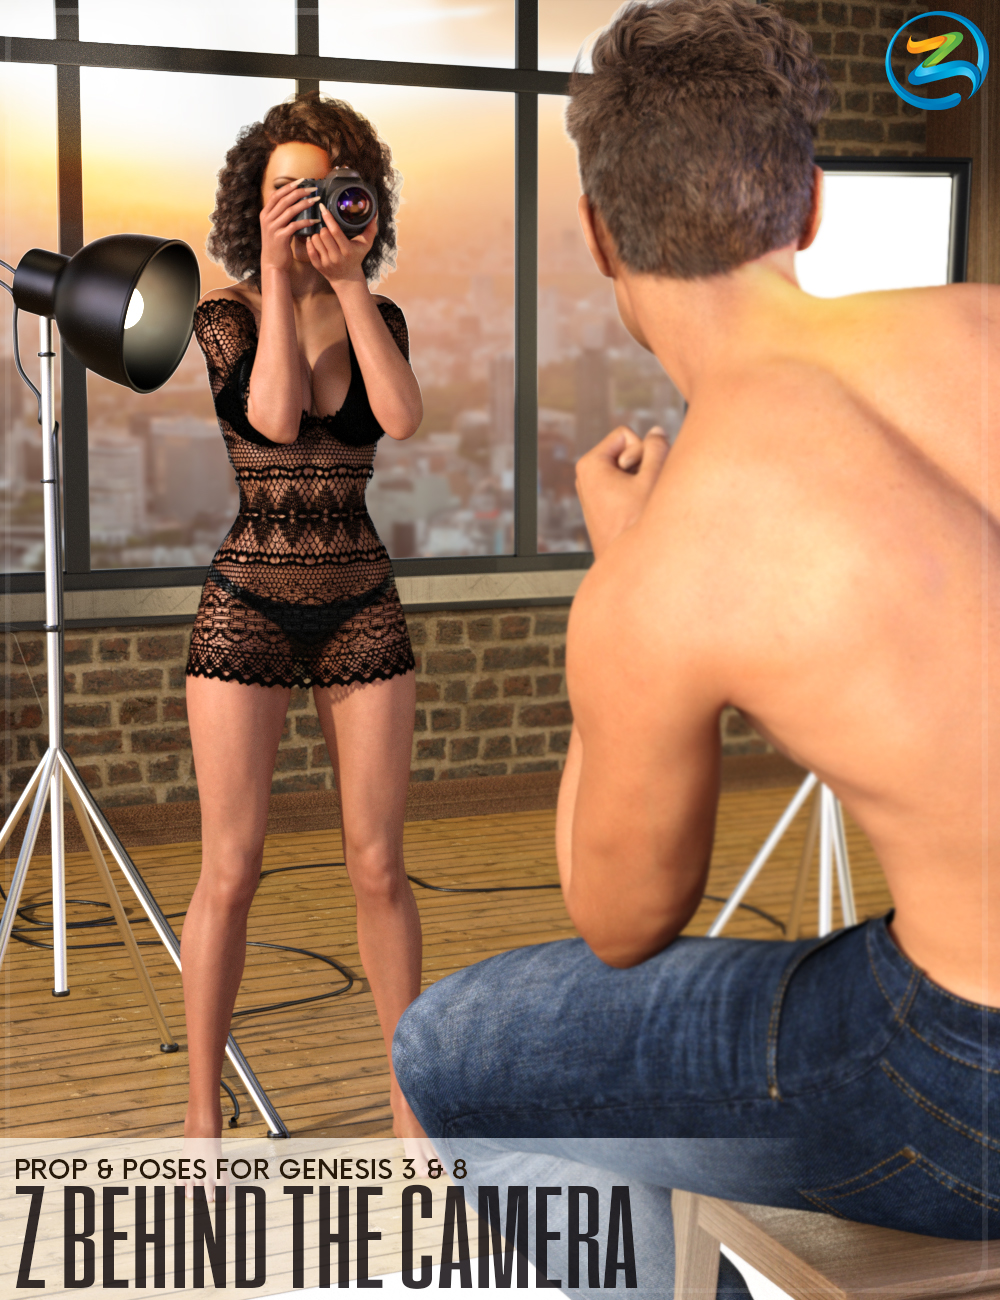 Z Behind The Camera - Prop & Poses for Genesis 3 and 8 by: Zeddicuss, 3D Models by Daz 3D